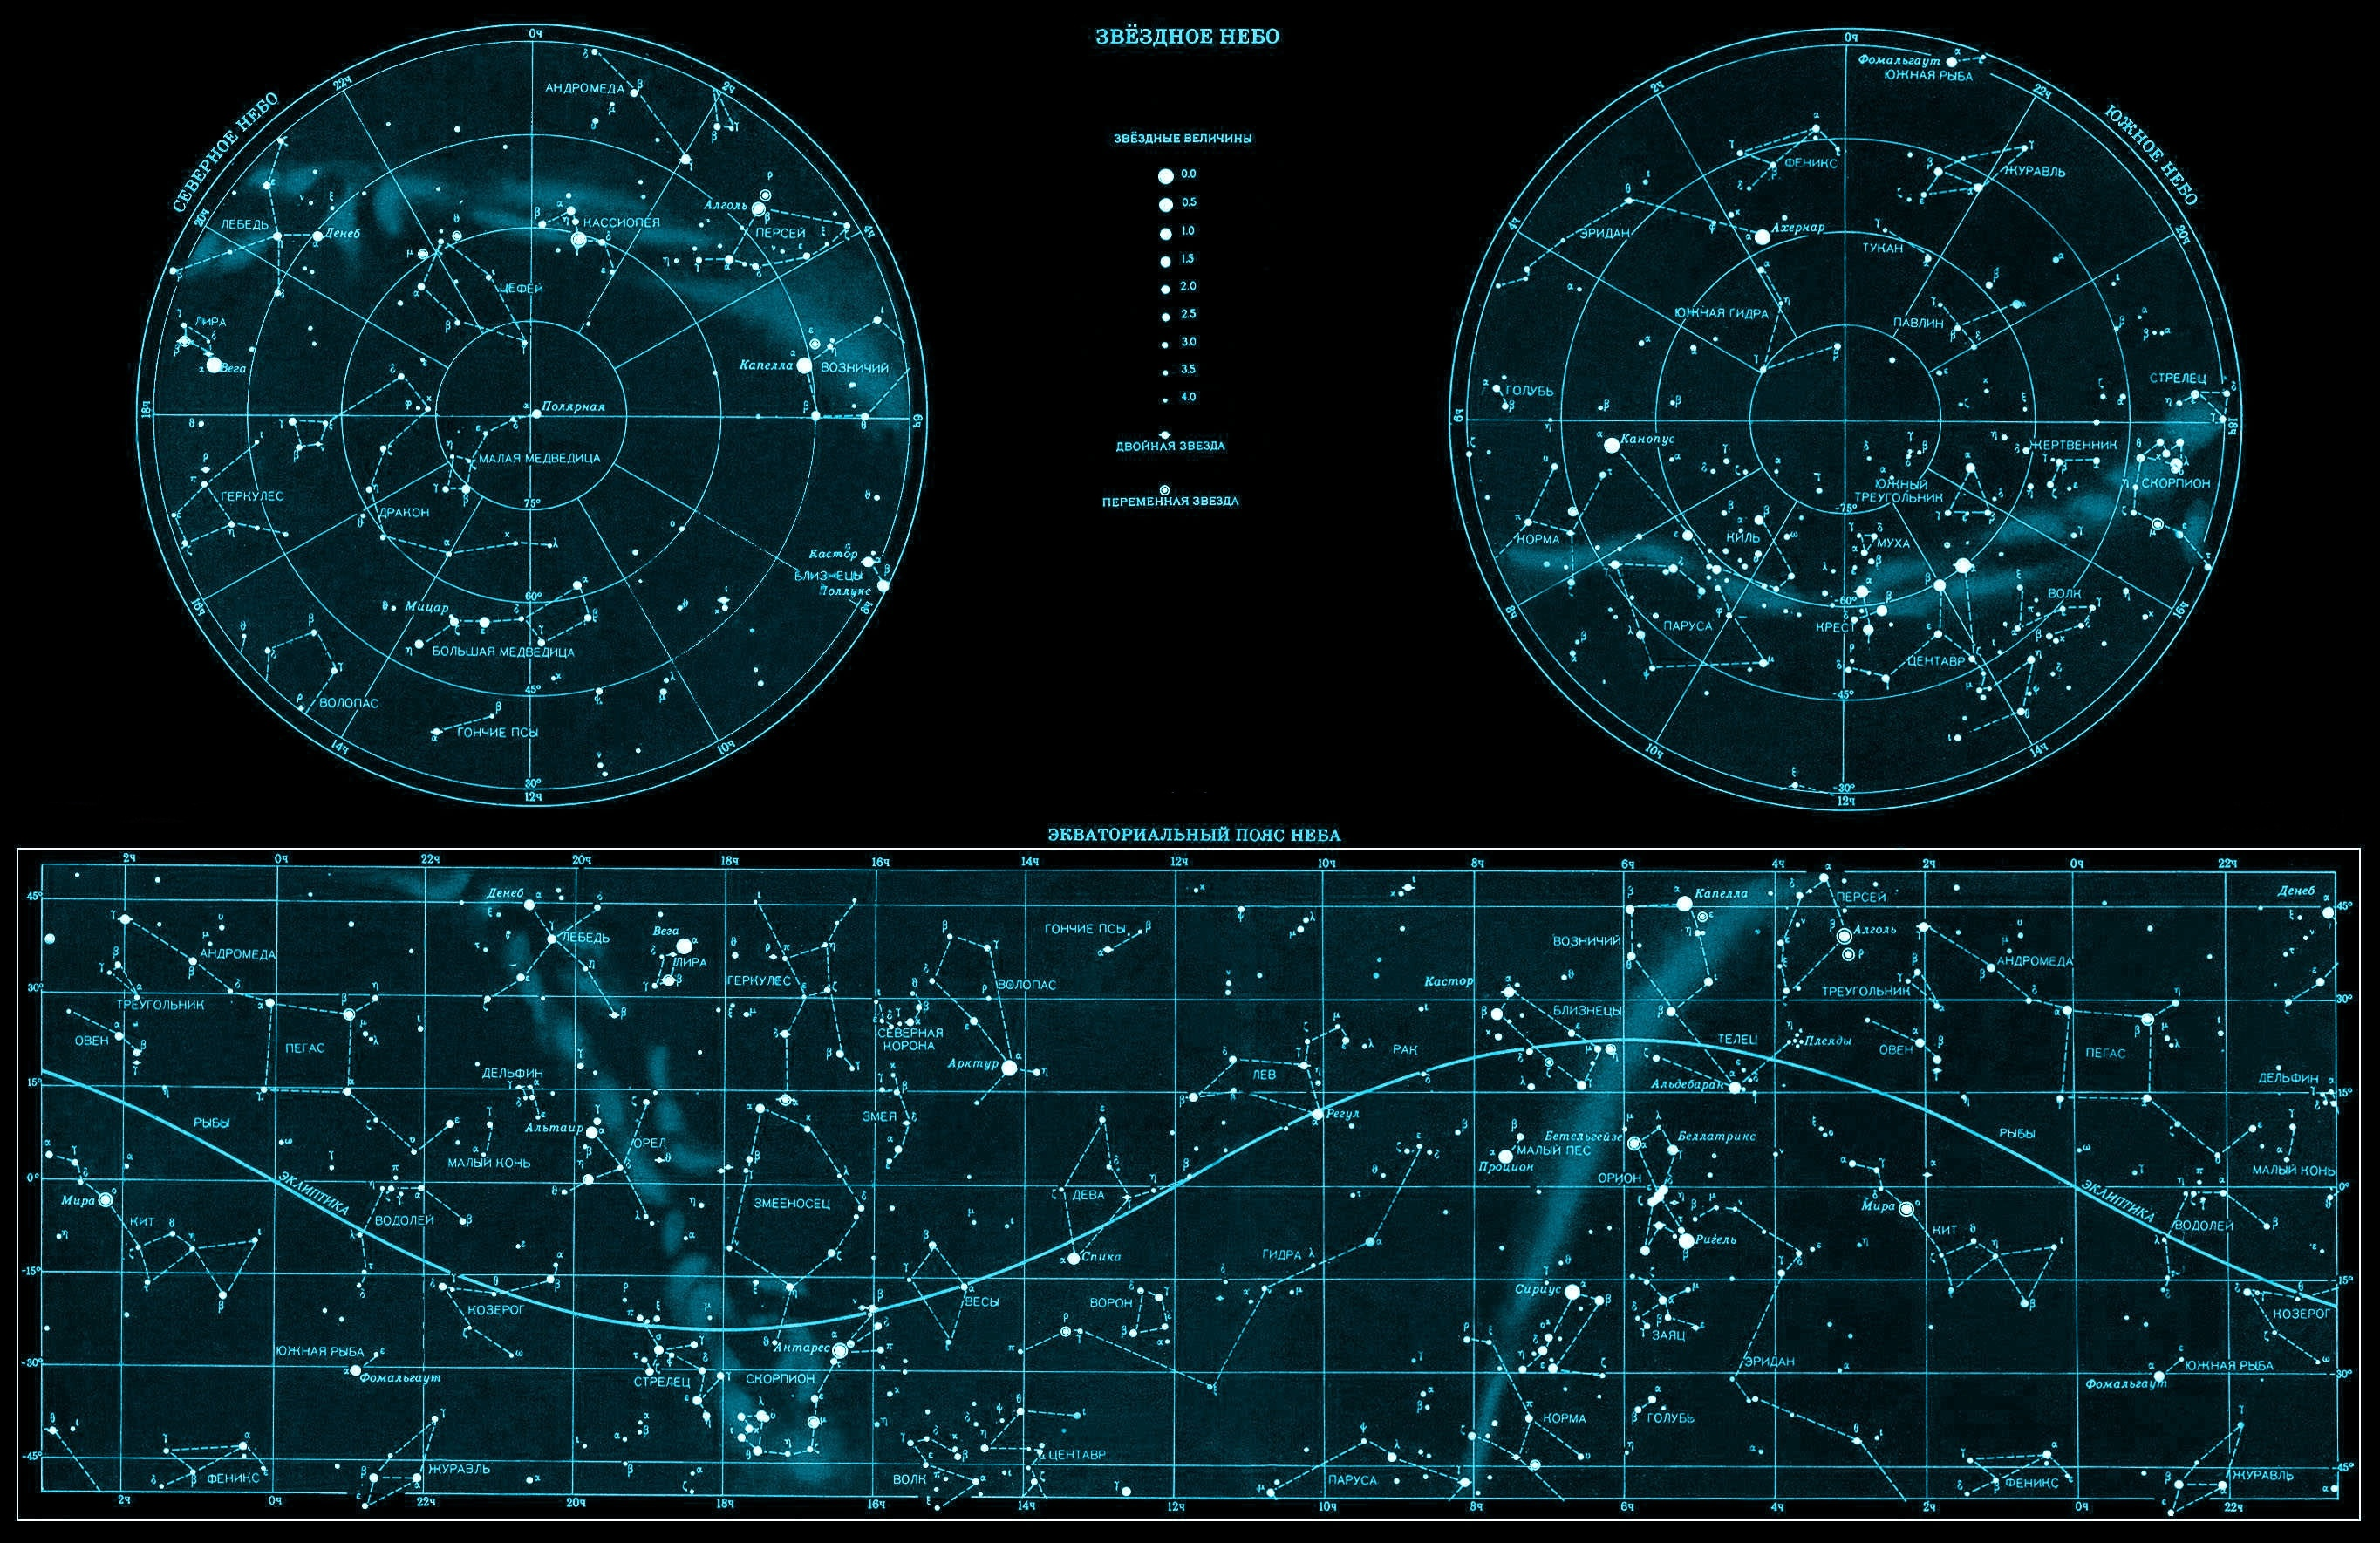 Stars Space Sky Map Wallpaper X WallpaperUP - Space map